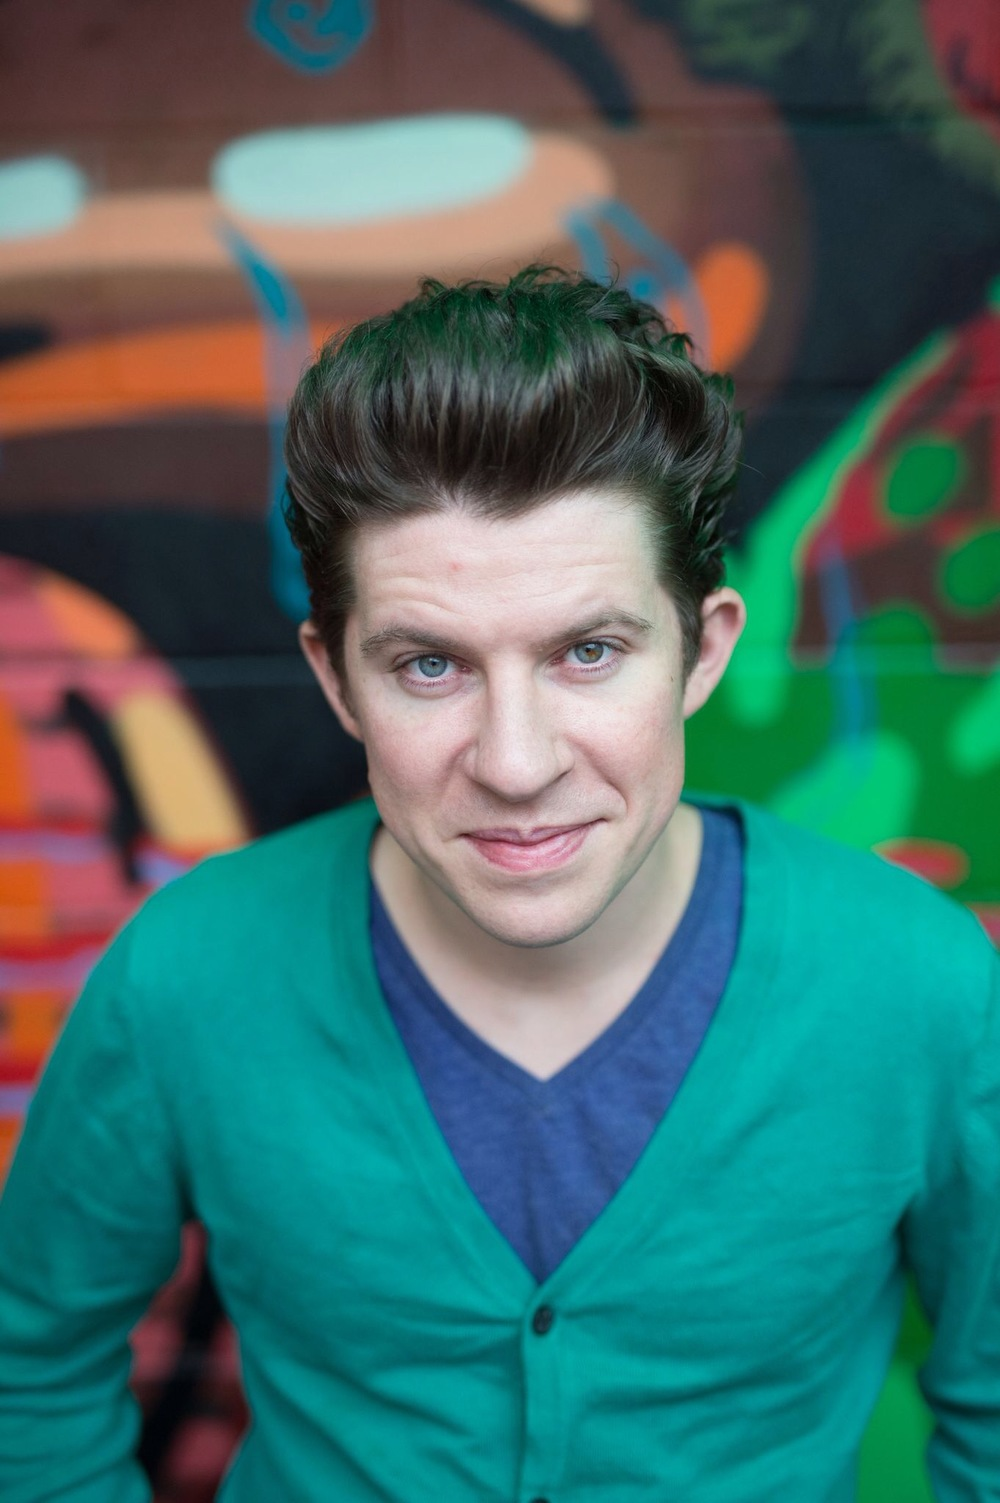 Q & A WITH FOOD NETWORK STAR JUSTIN WARNER — Martie Duncan